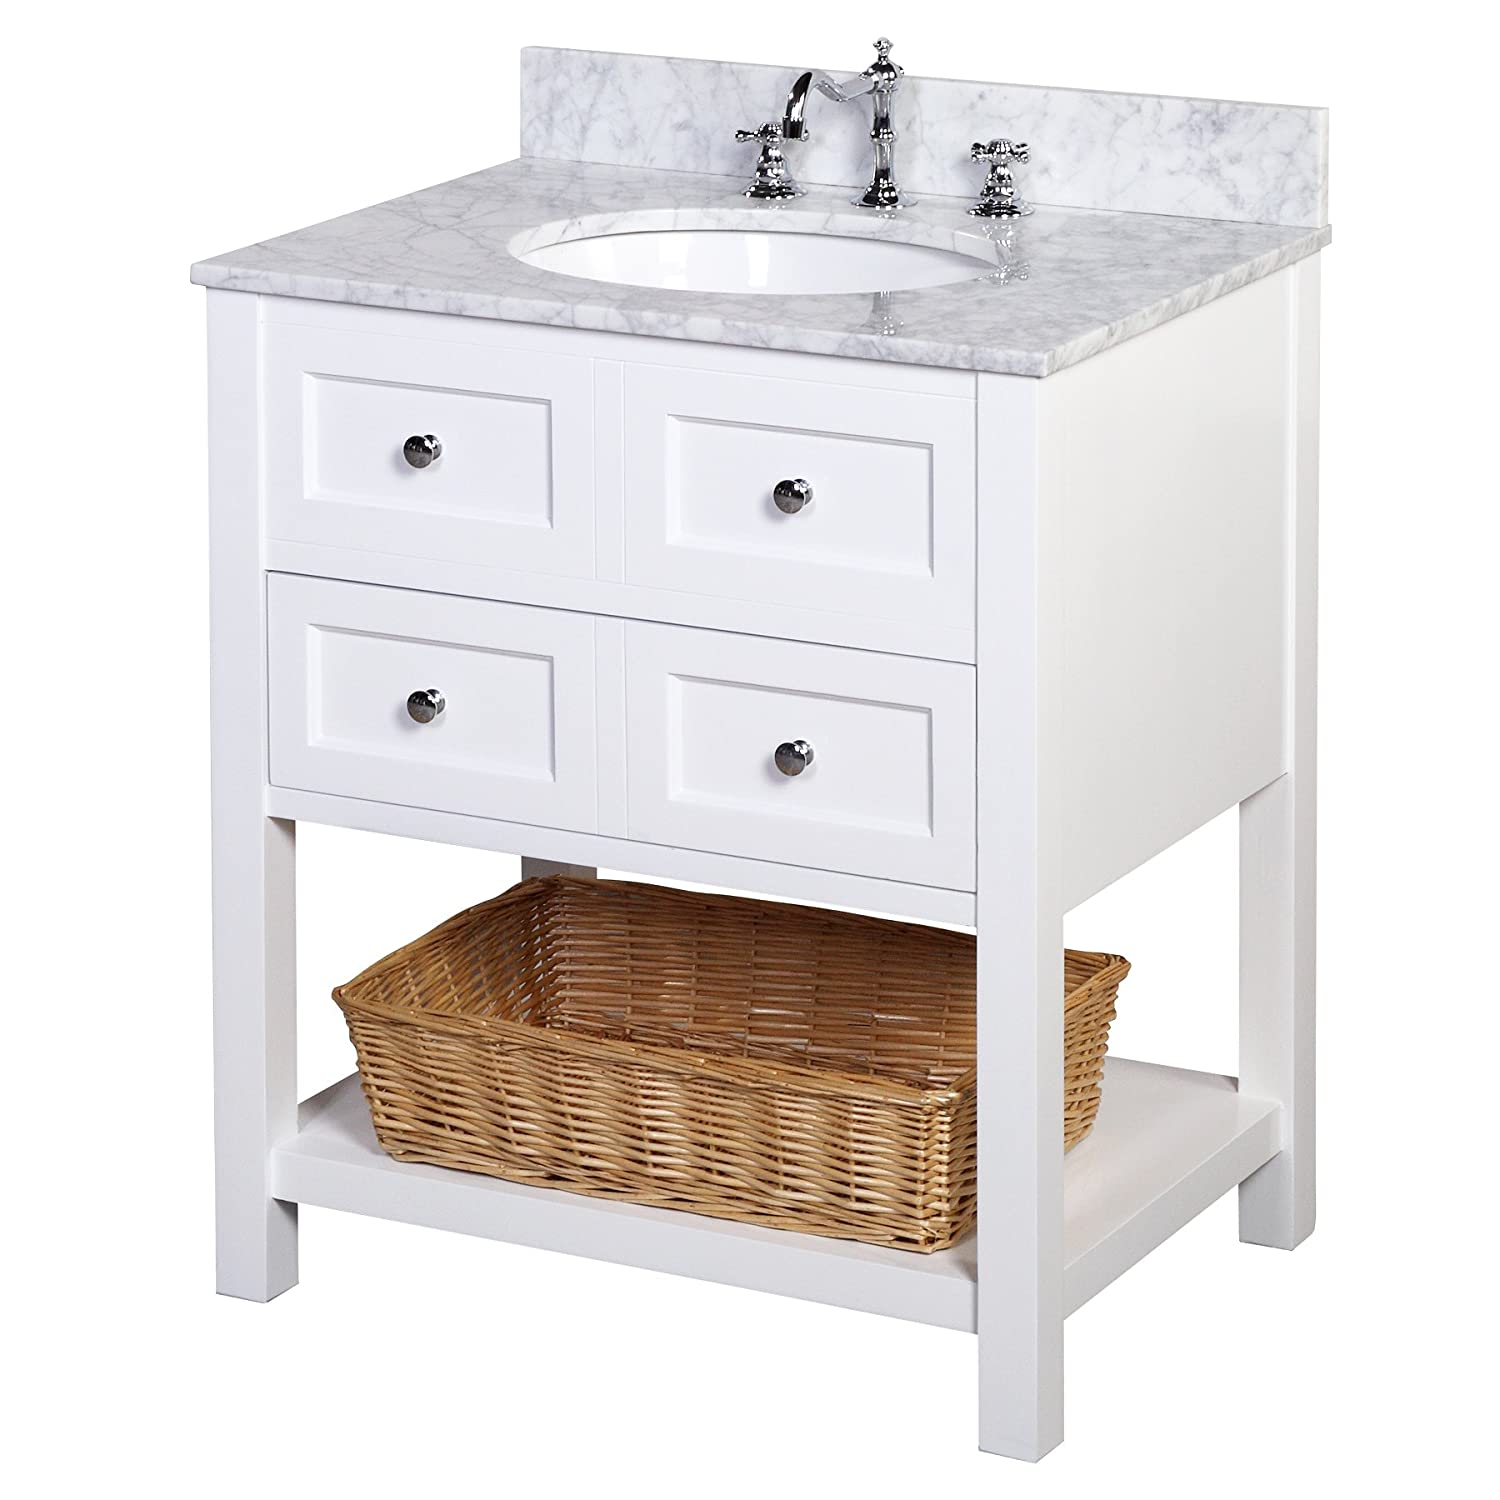 the with right kohleryliving drawer jute modern legs vanity from drawers to bathroom blog size design set how inch choose yliving